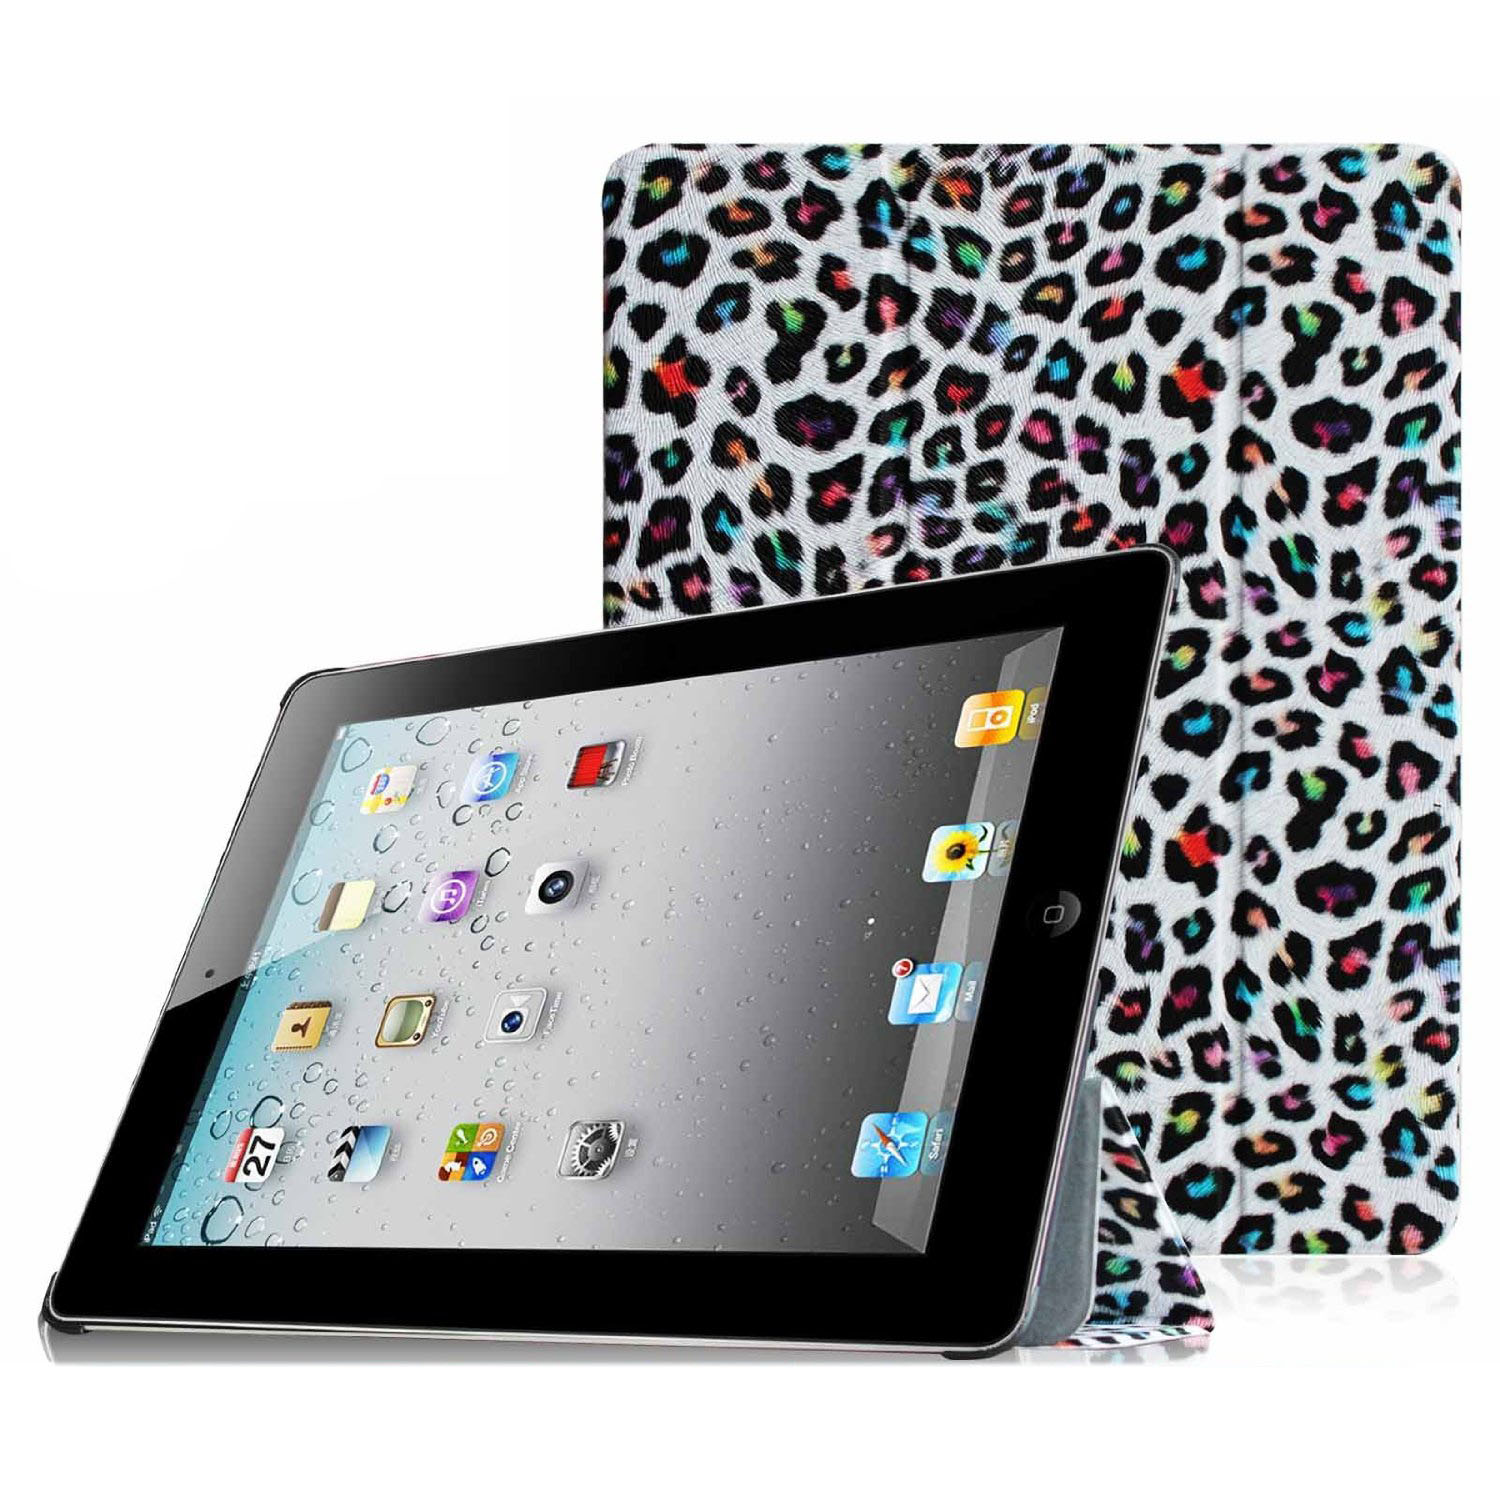 Fintie SmartShell Case for Apple iPad 4th Generation with Retina Display, iPad 3 & iPad 2, Leopard Rainbow